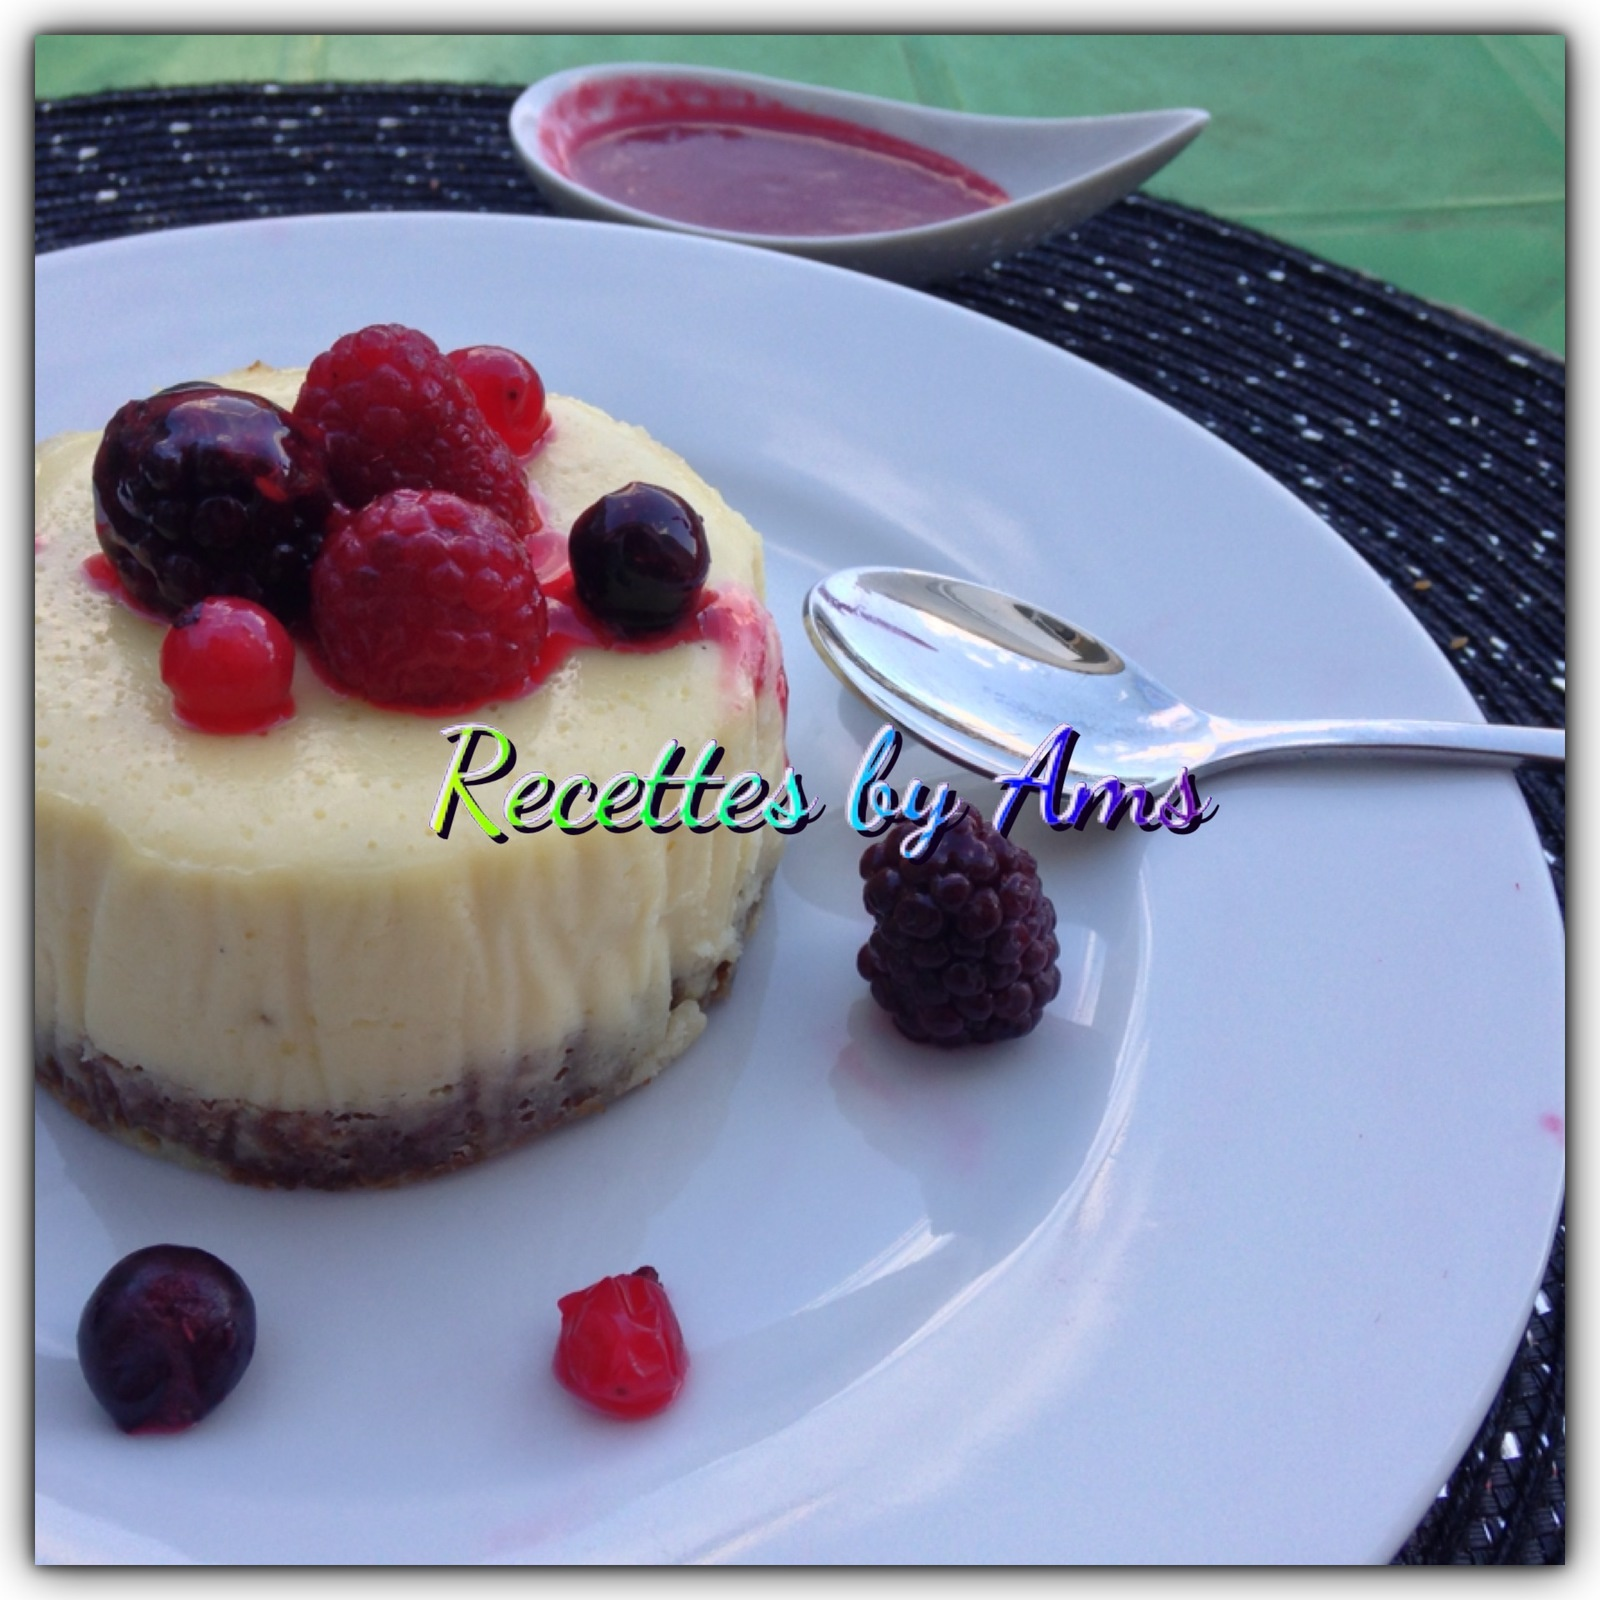 Cheesecake aux fruits rouges coulis framboise maison ��